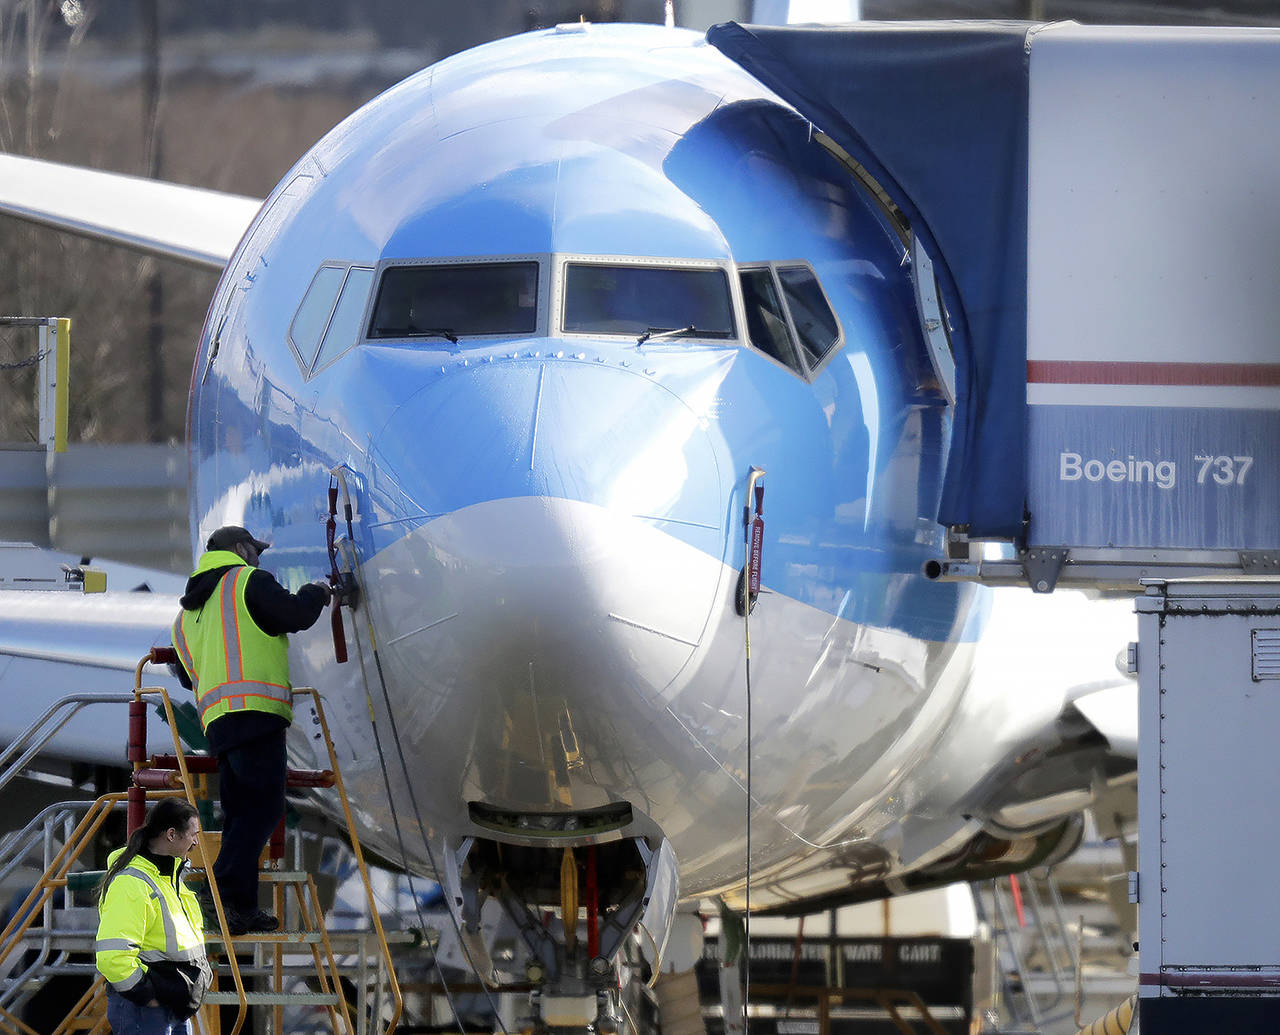 In this March 13 photo, a worker stands on a platform near a Boeing 737 Max 8 airplane being built for TUI Group at Boeing Co.'s Renton Assembly Plant in Renton. (AP Photo/Ted S. Warren, File)